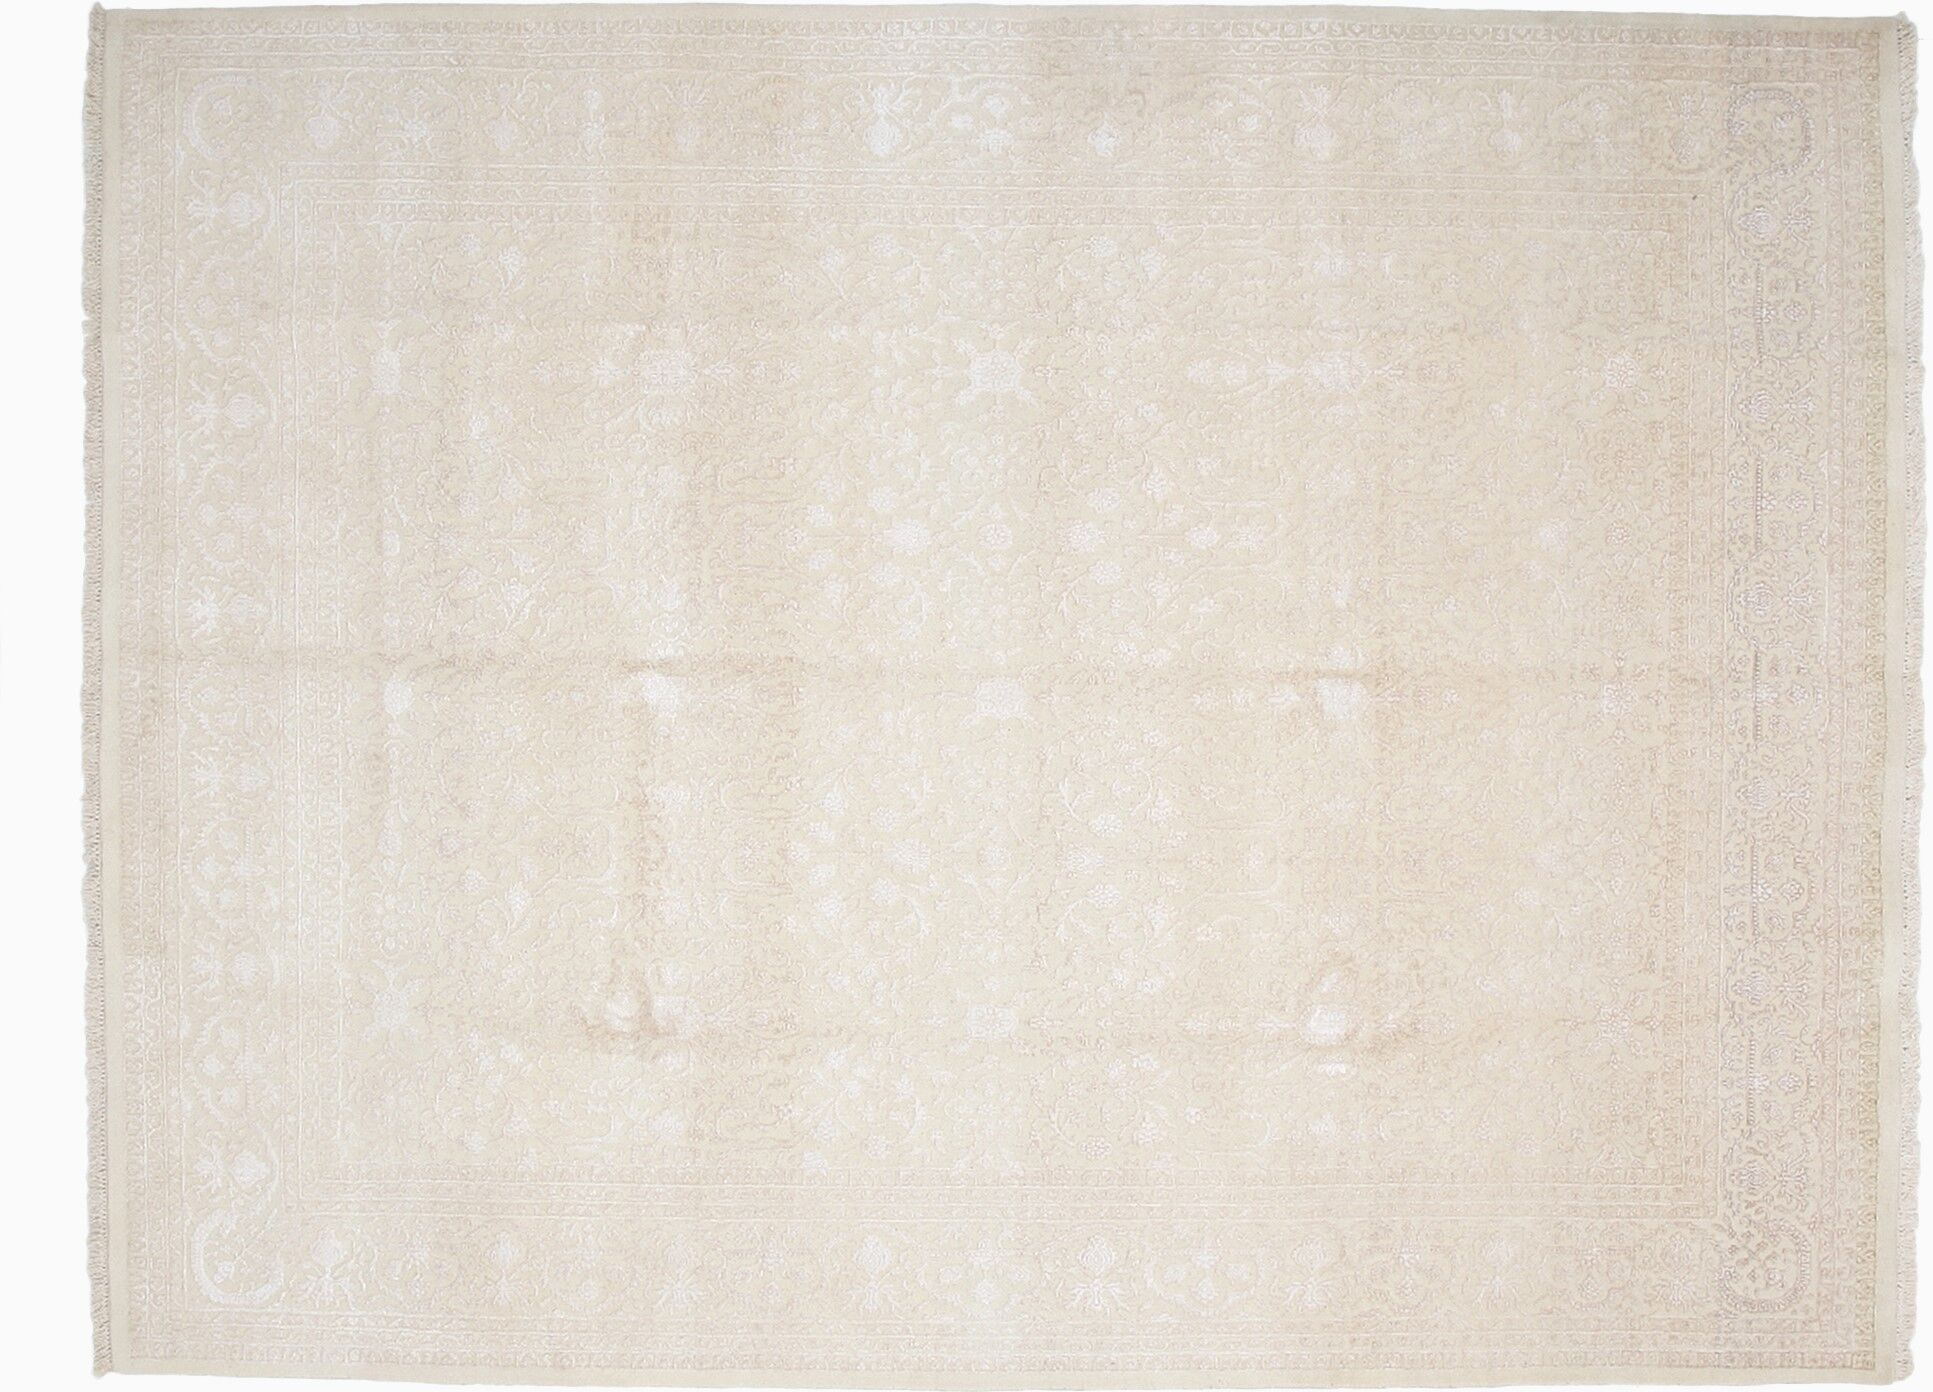 One-of-a-Kind Jaipur Hand-Knotted Ivory Area Rug